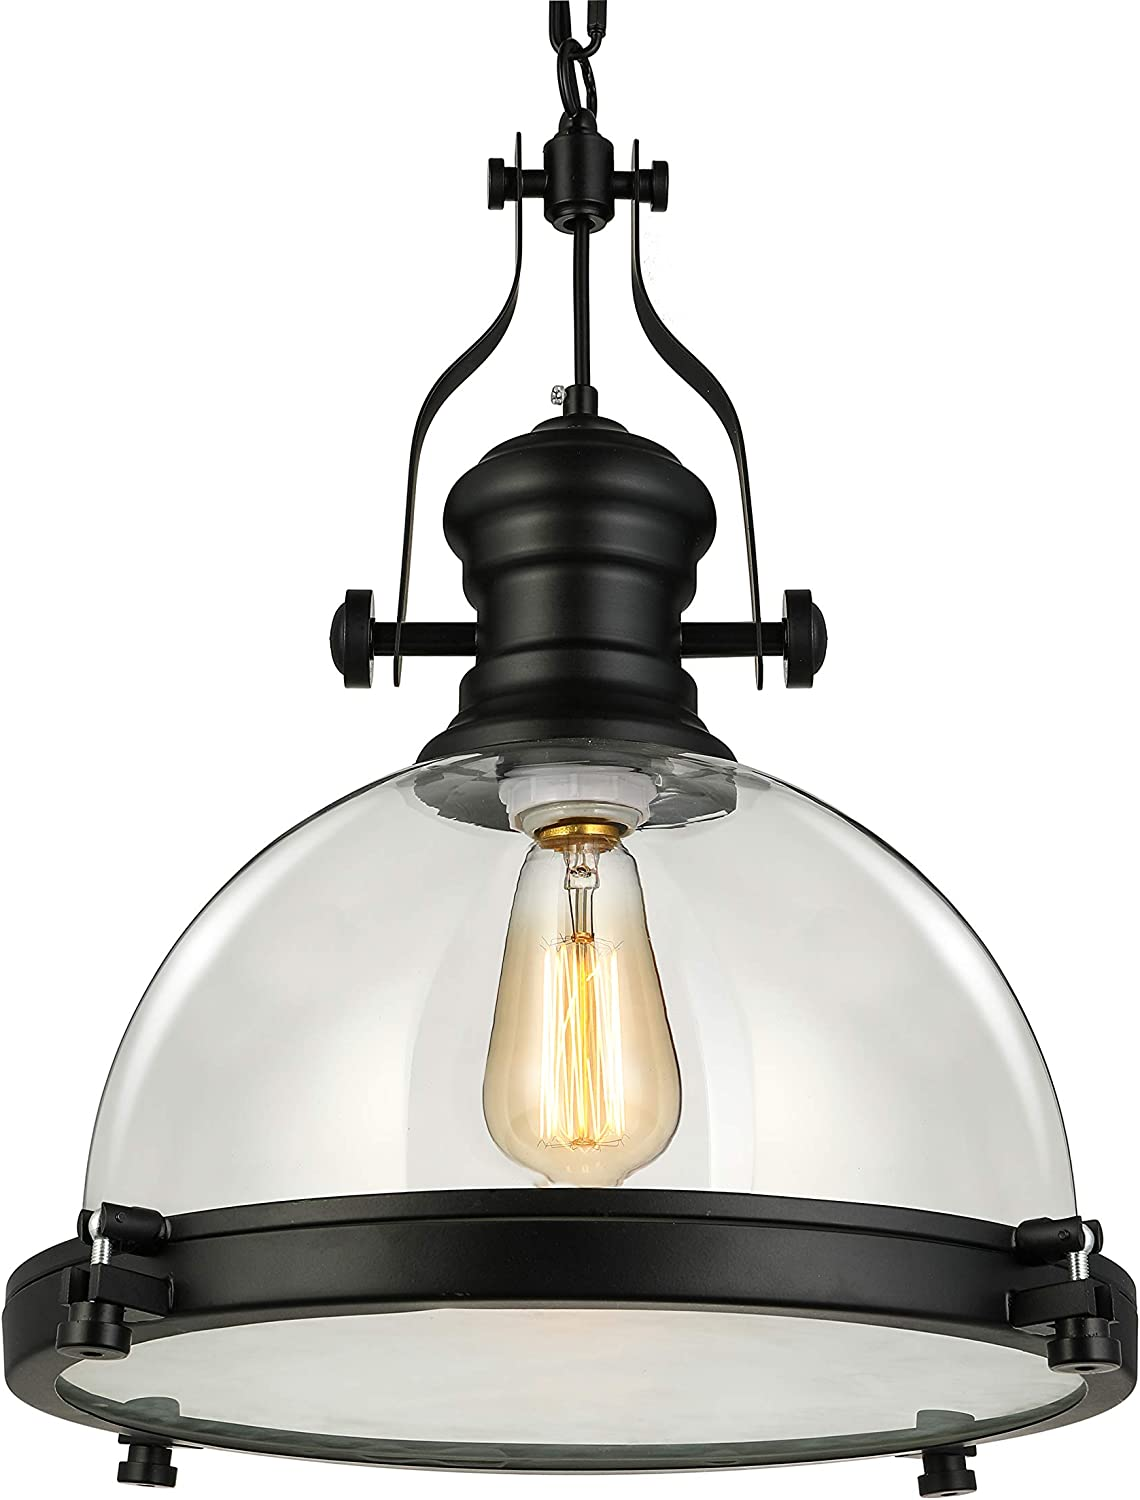 NIUYAO Industrial Nautical 15  Wide Glass Pendant Light Retro Clear Ceiling Lighting Chandelier Hanging Light with Chain for Kitchen Restuarant Cafe Living Room Bar Black